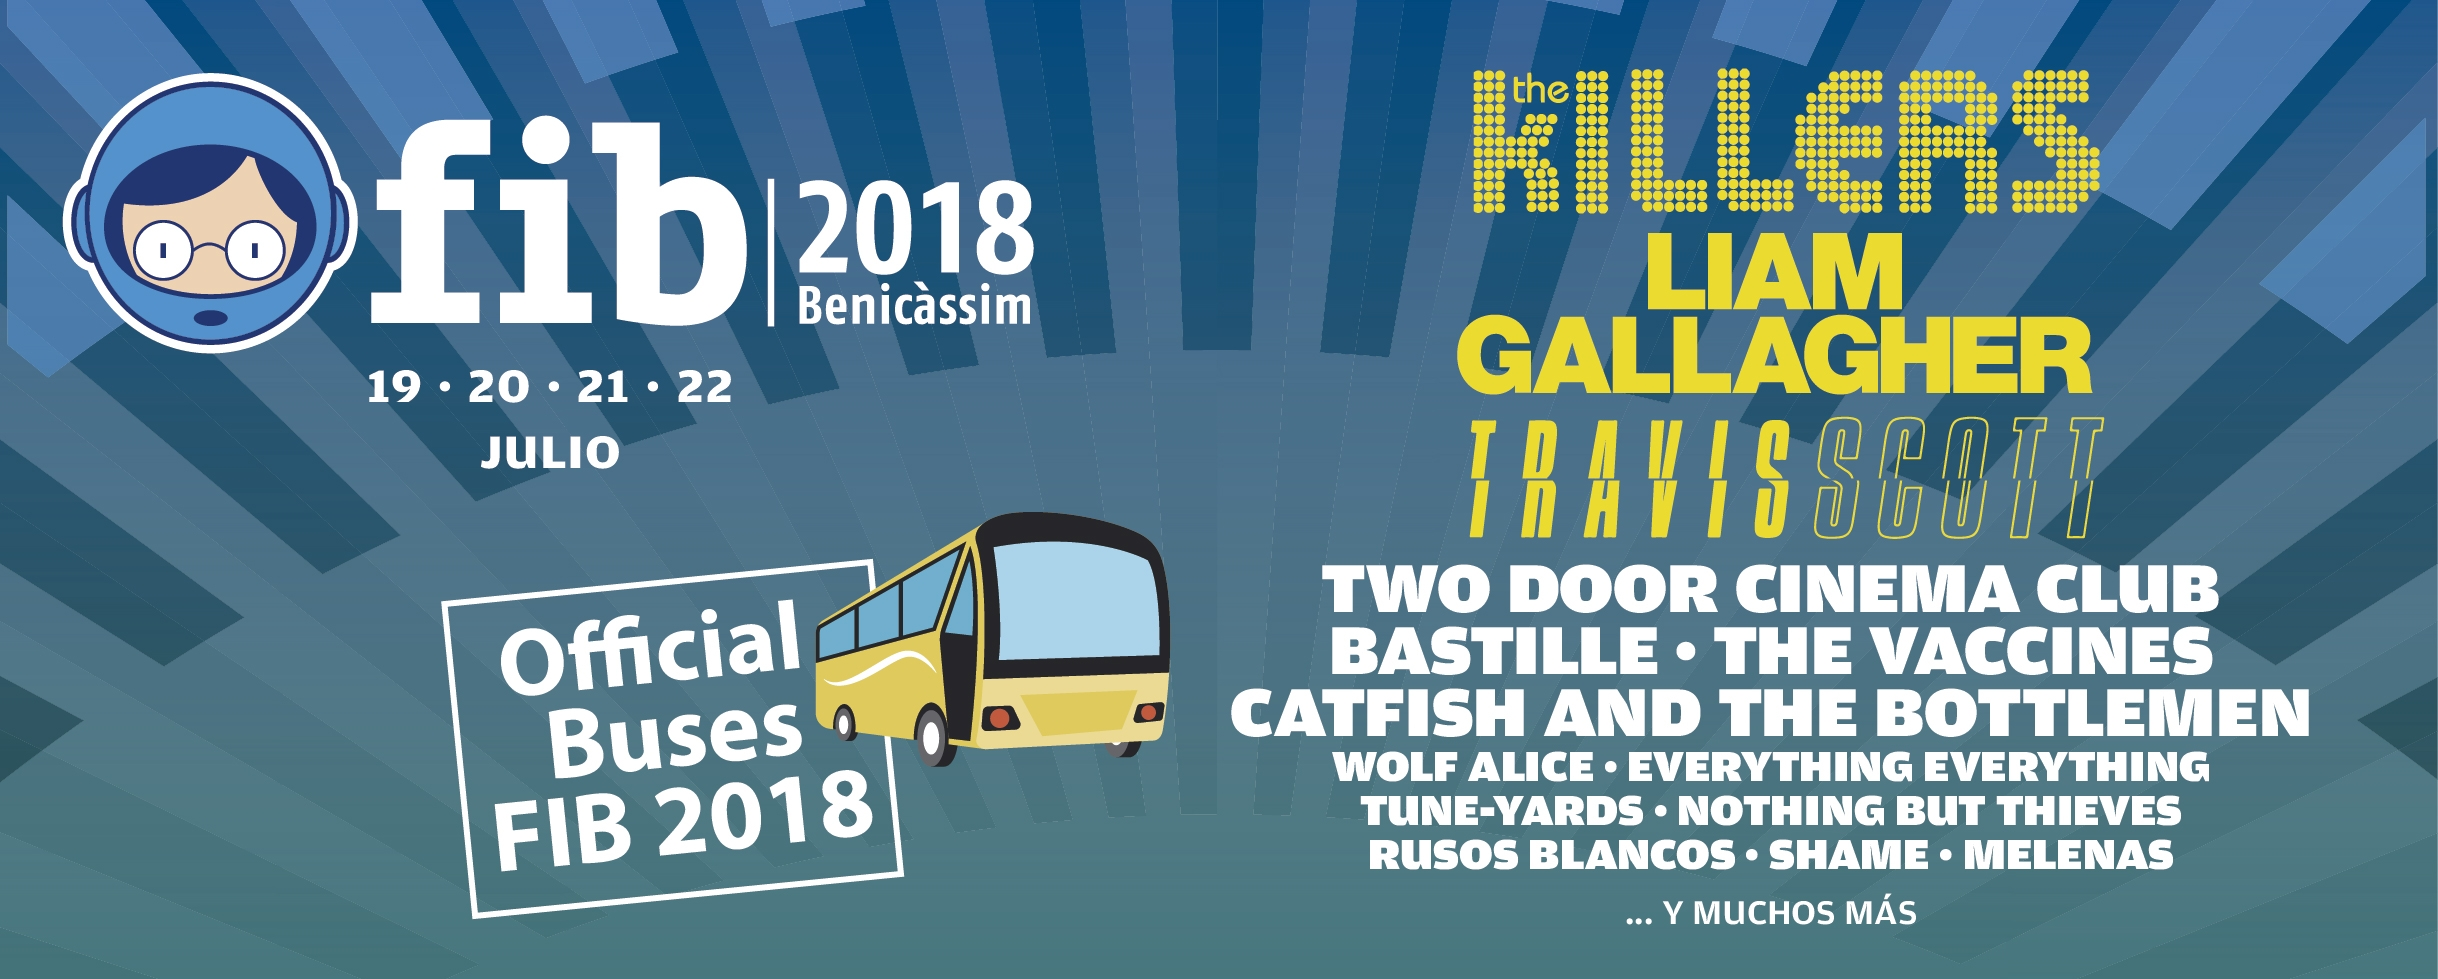 FIB 2018 Official buses